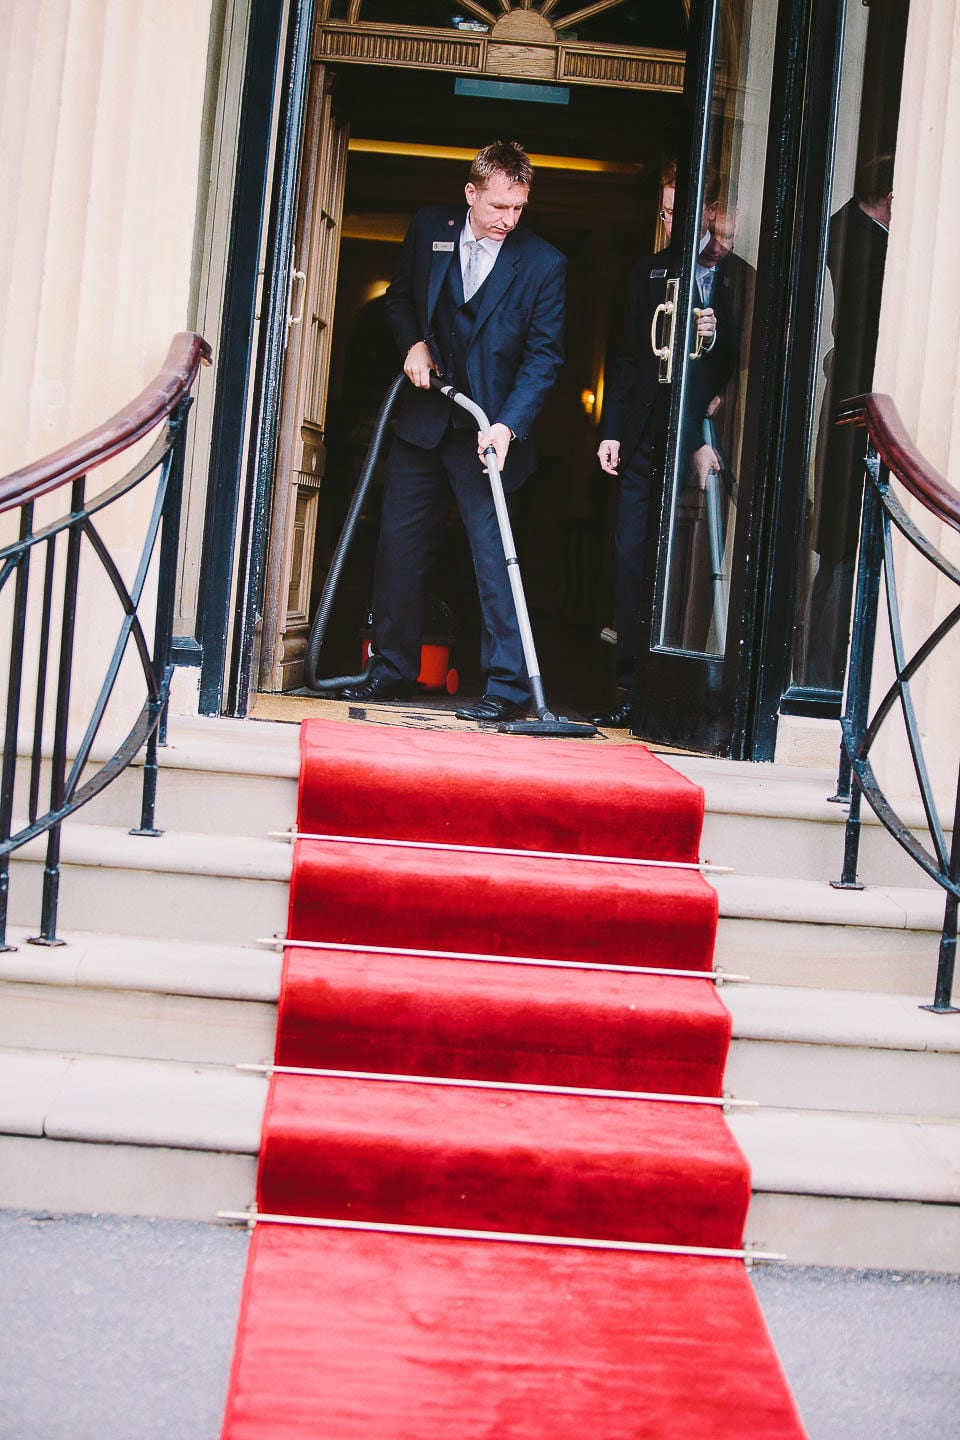 Staff vacuuming the red carpet on the steps at Bath Spa Hotel